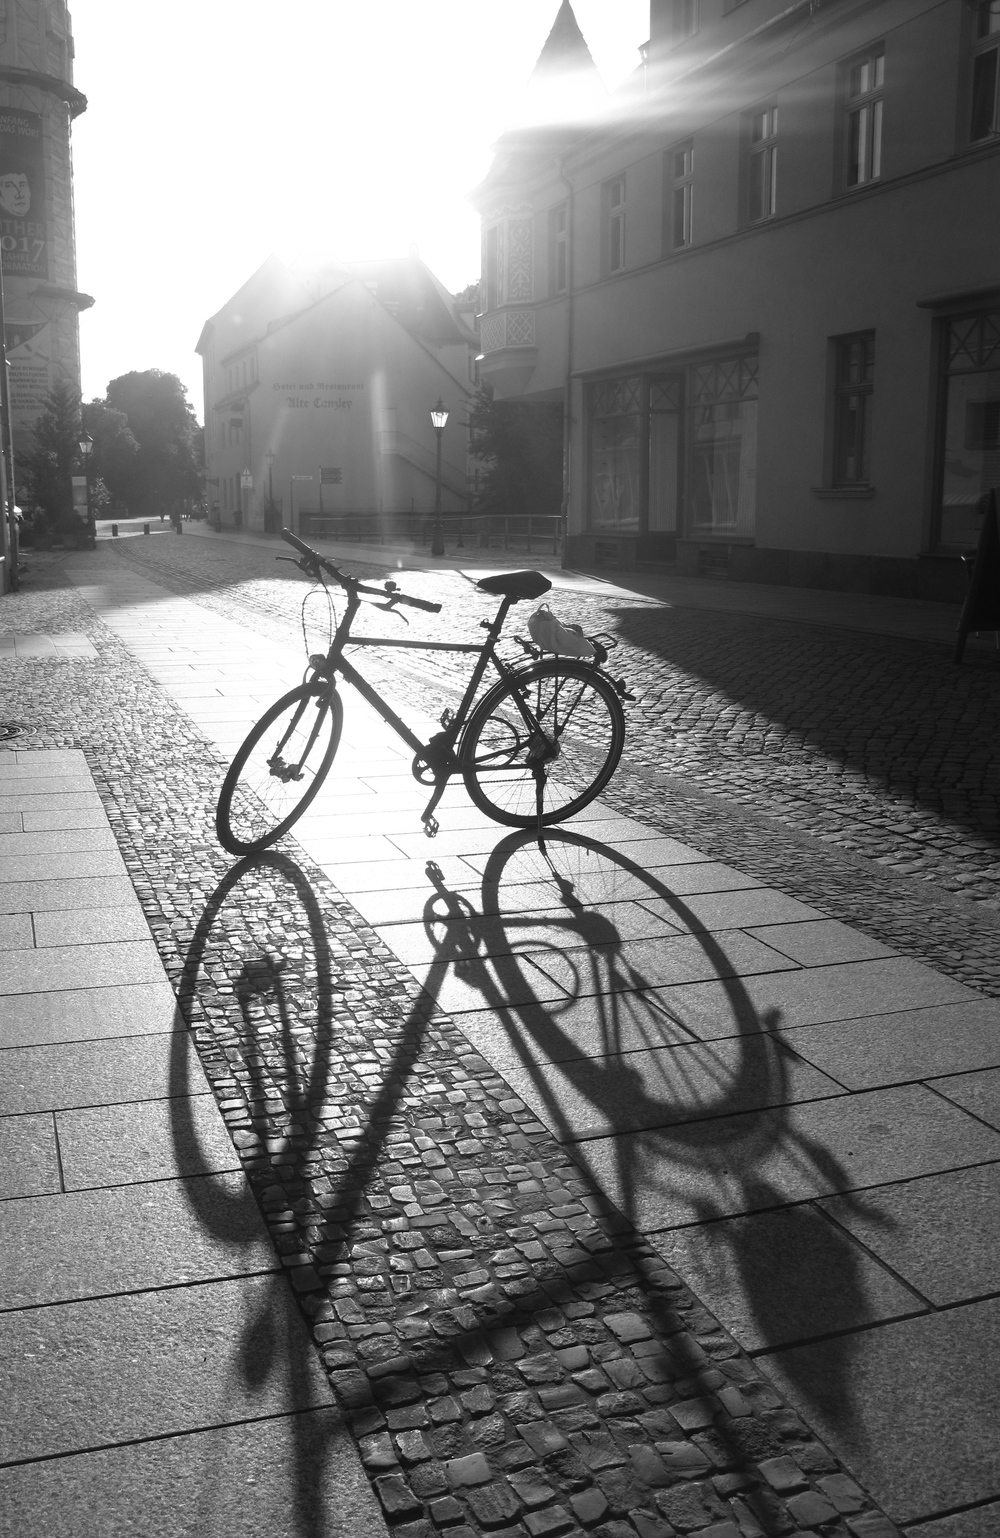 Bicycle and long shadows of the bicycle in the afternoon, Wittenberg.